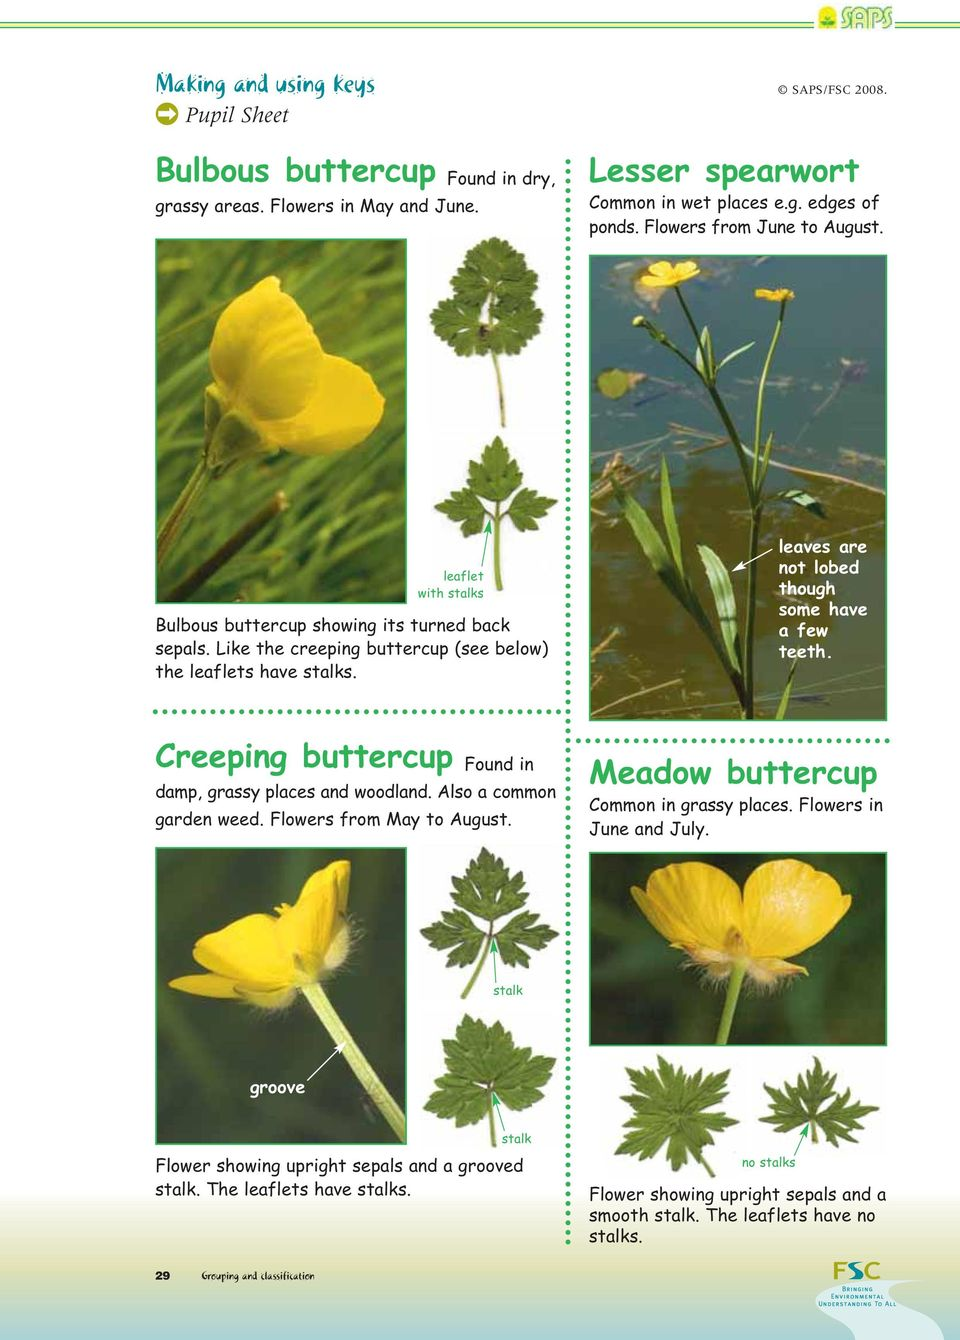 Creeping buttercup Found in damp, grassy places and woodland. Also a common garden weed. Flowers from May to August. Meadow buttercup Common in grassy places. Flowers in June and July.